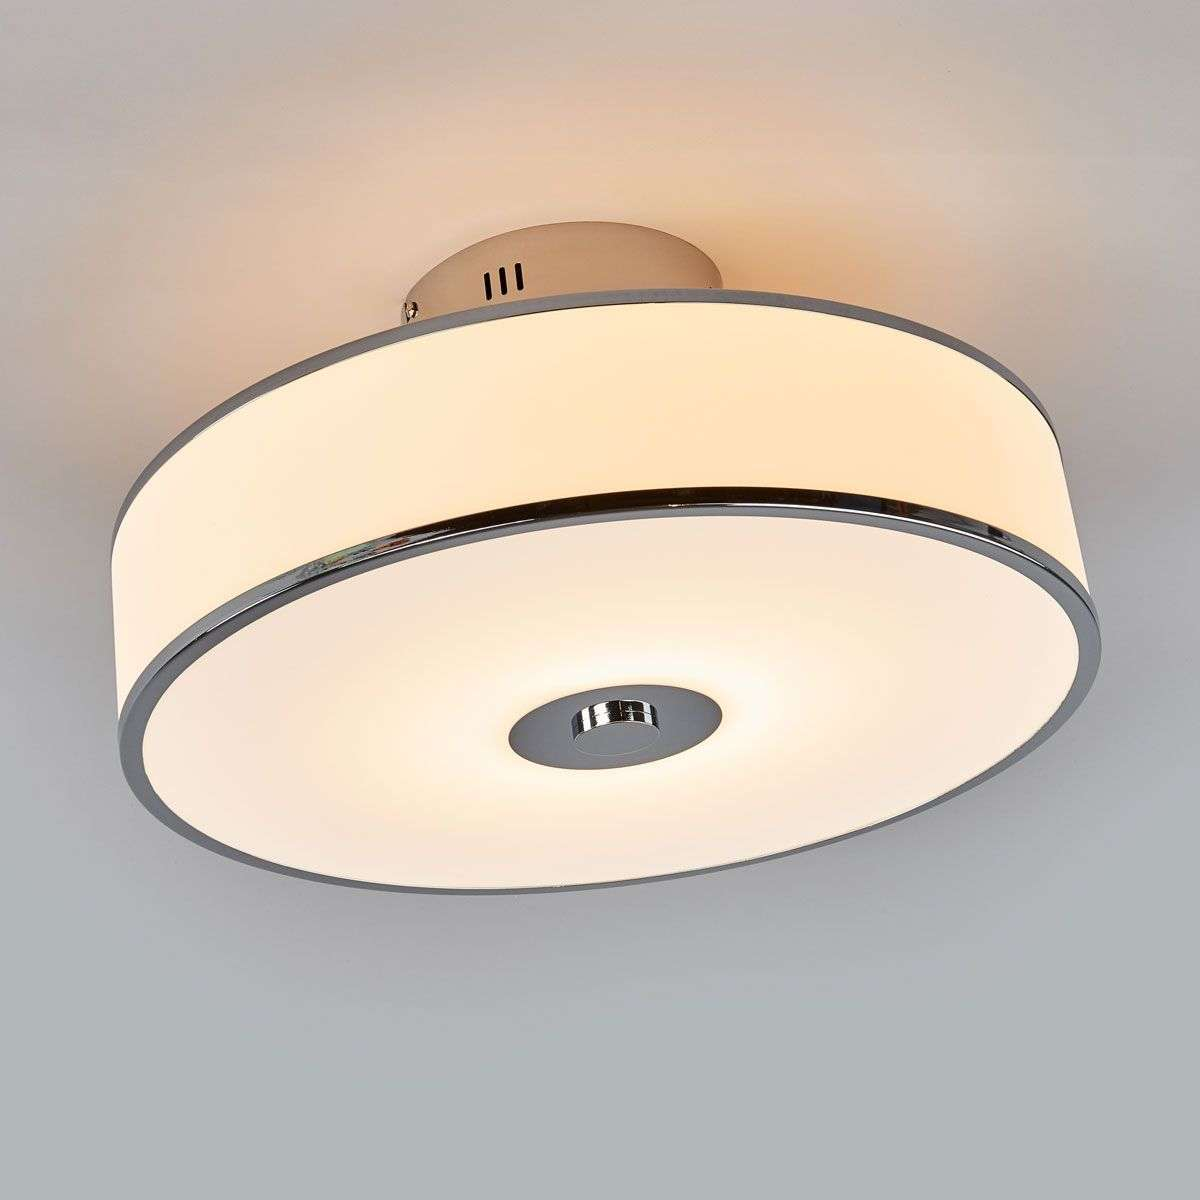 Dimmable led ceiling lamp lounge in whitechrome lights dimmable led ceiling lamp lounge in whitechrome 8507921 32 aloadofball Image collections